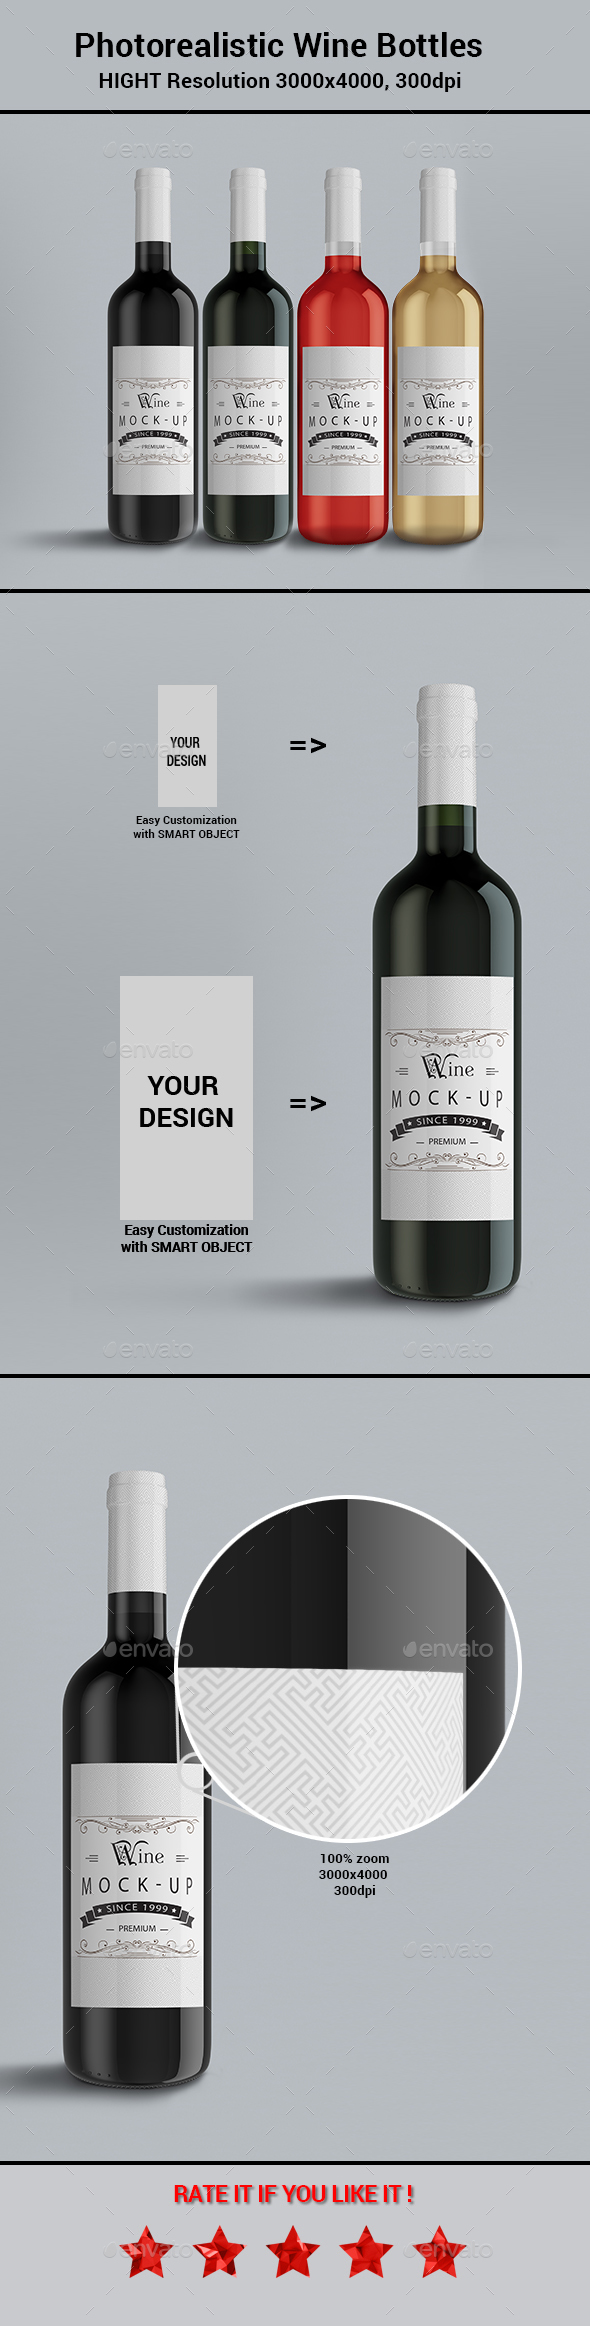 Photorealistic Wine Bottle - Food and Drink Packaging